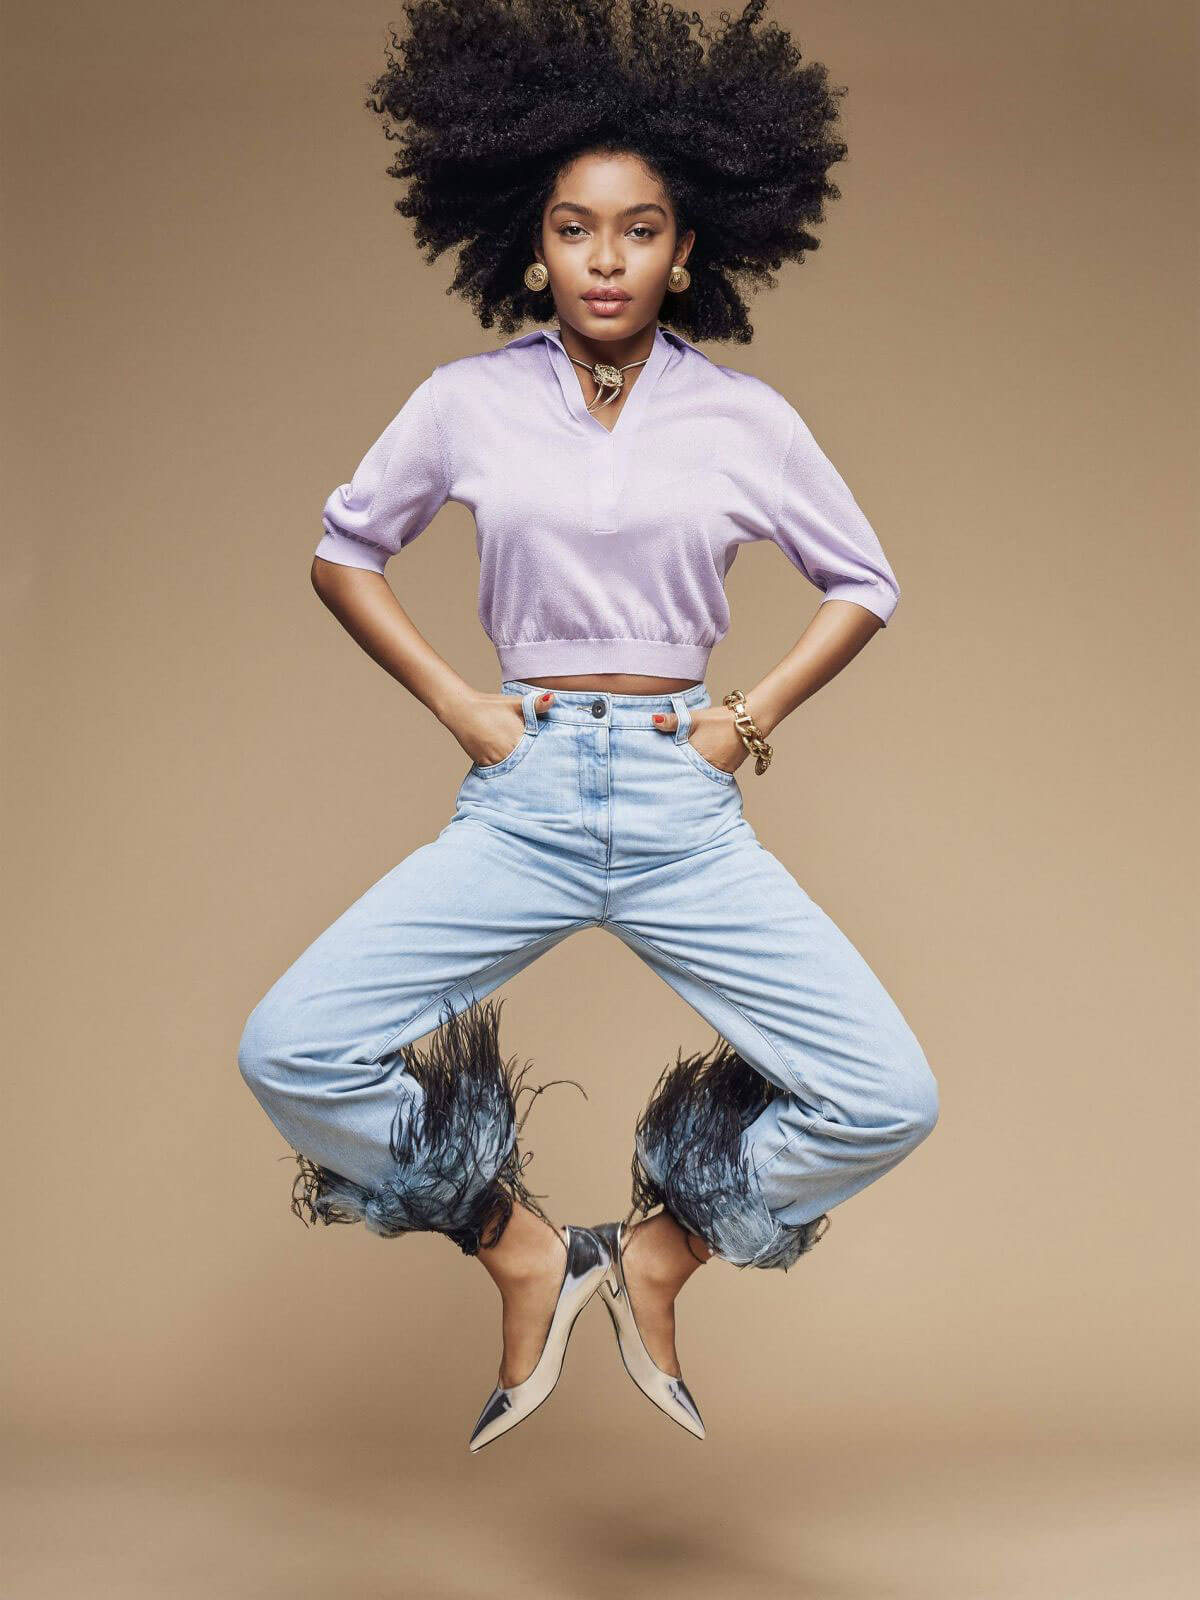 Yara Shahidi Poses for Porter Magazine, February 2018 Photos